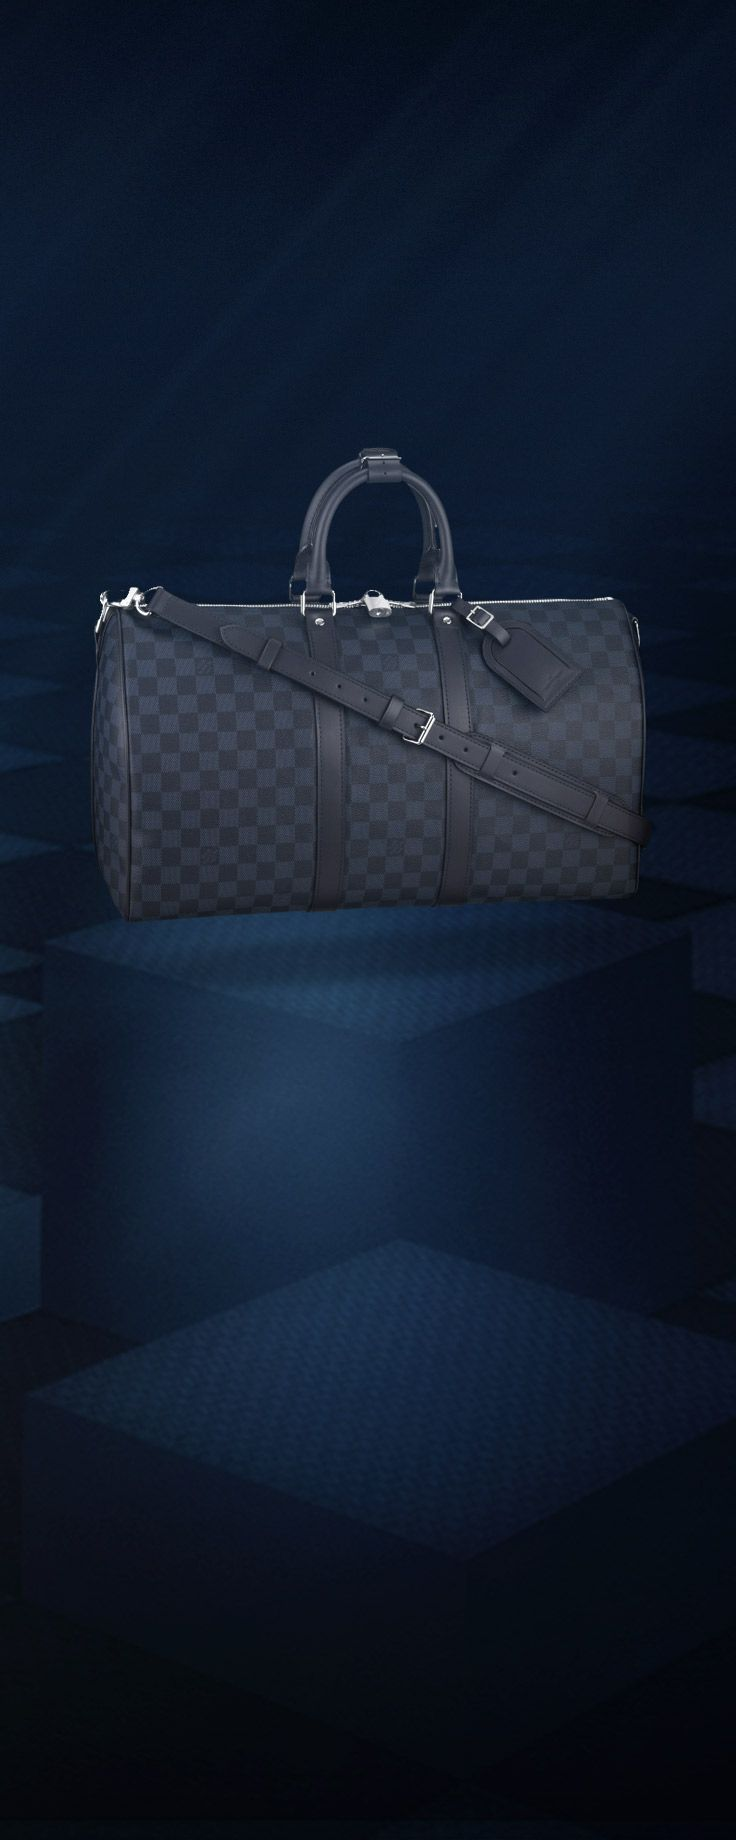 The Louis Vuitton Keepall, the classic revisited in the new Damier Cobalt canvas.